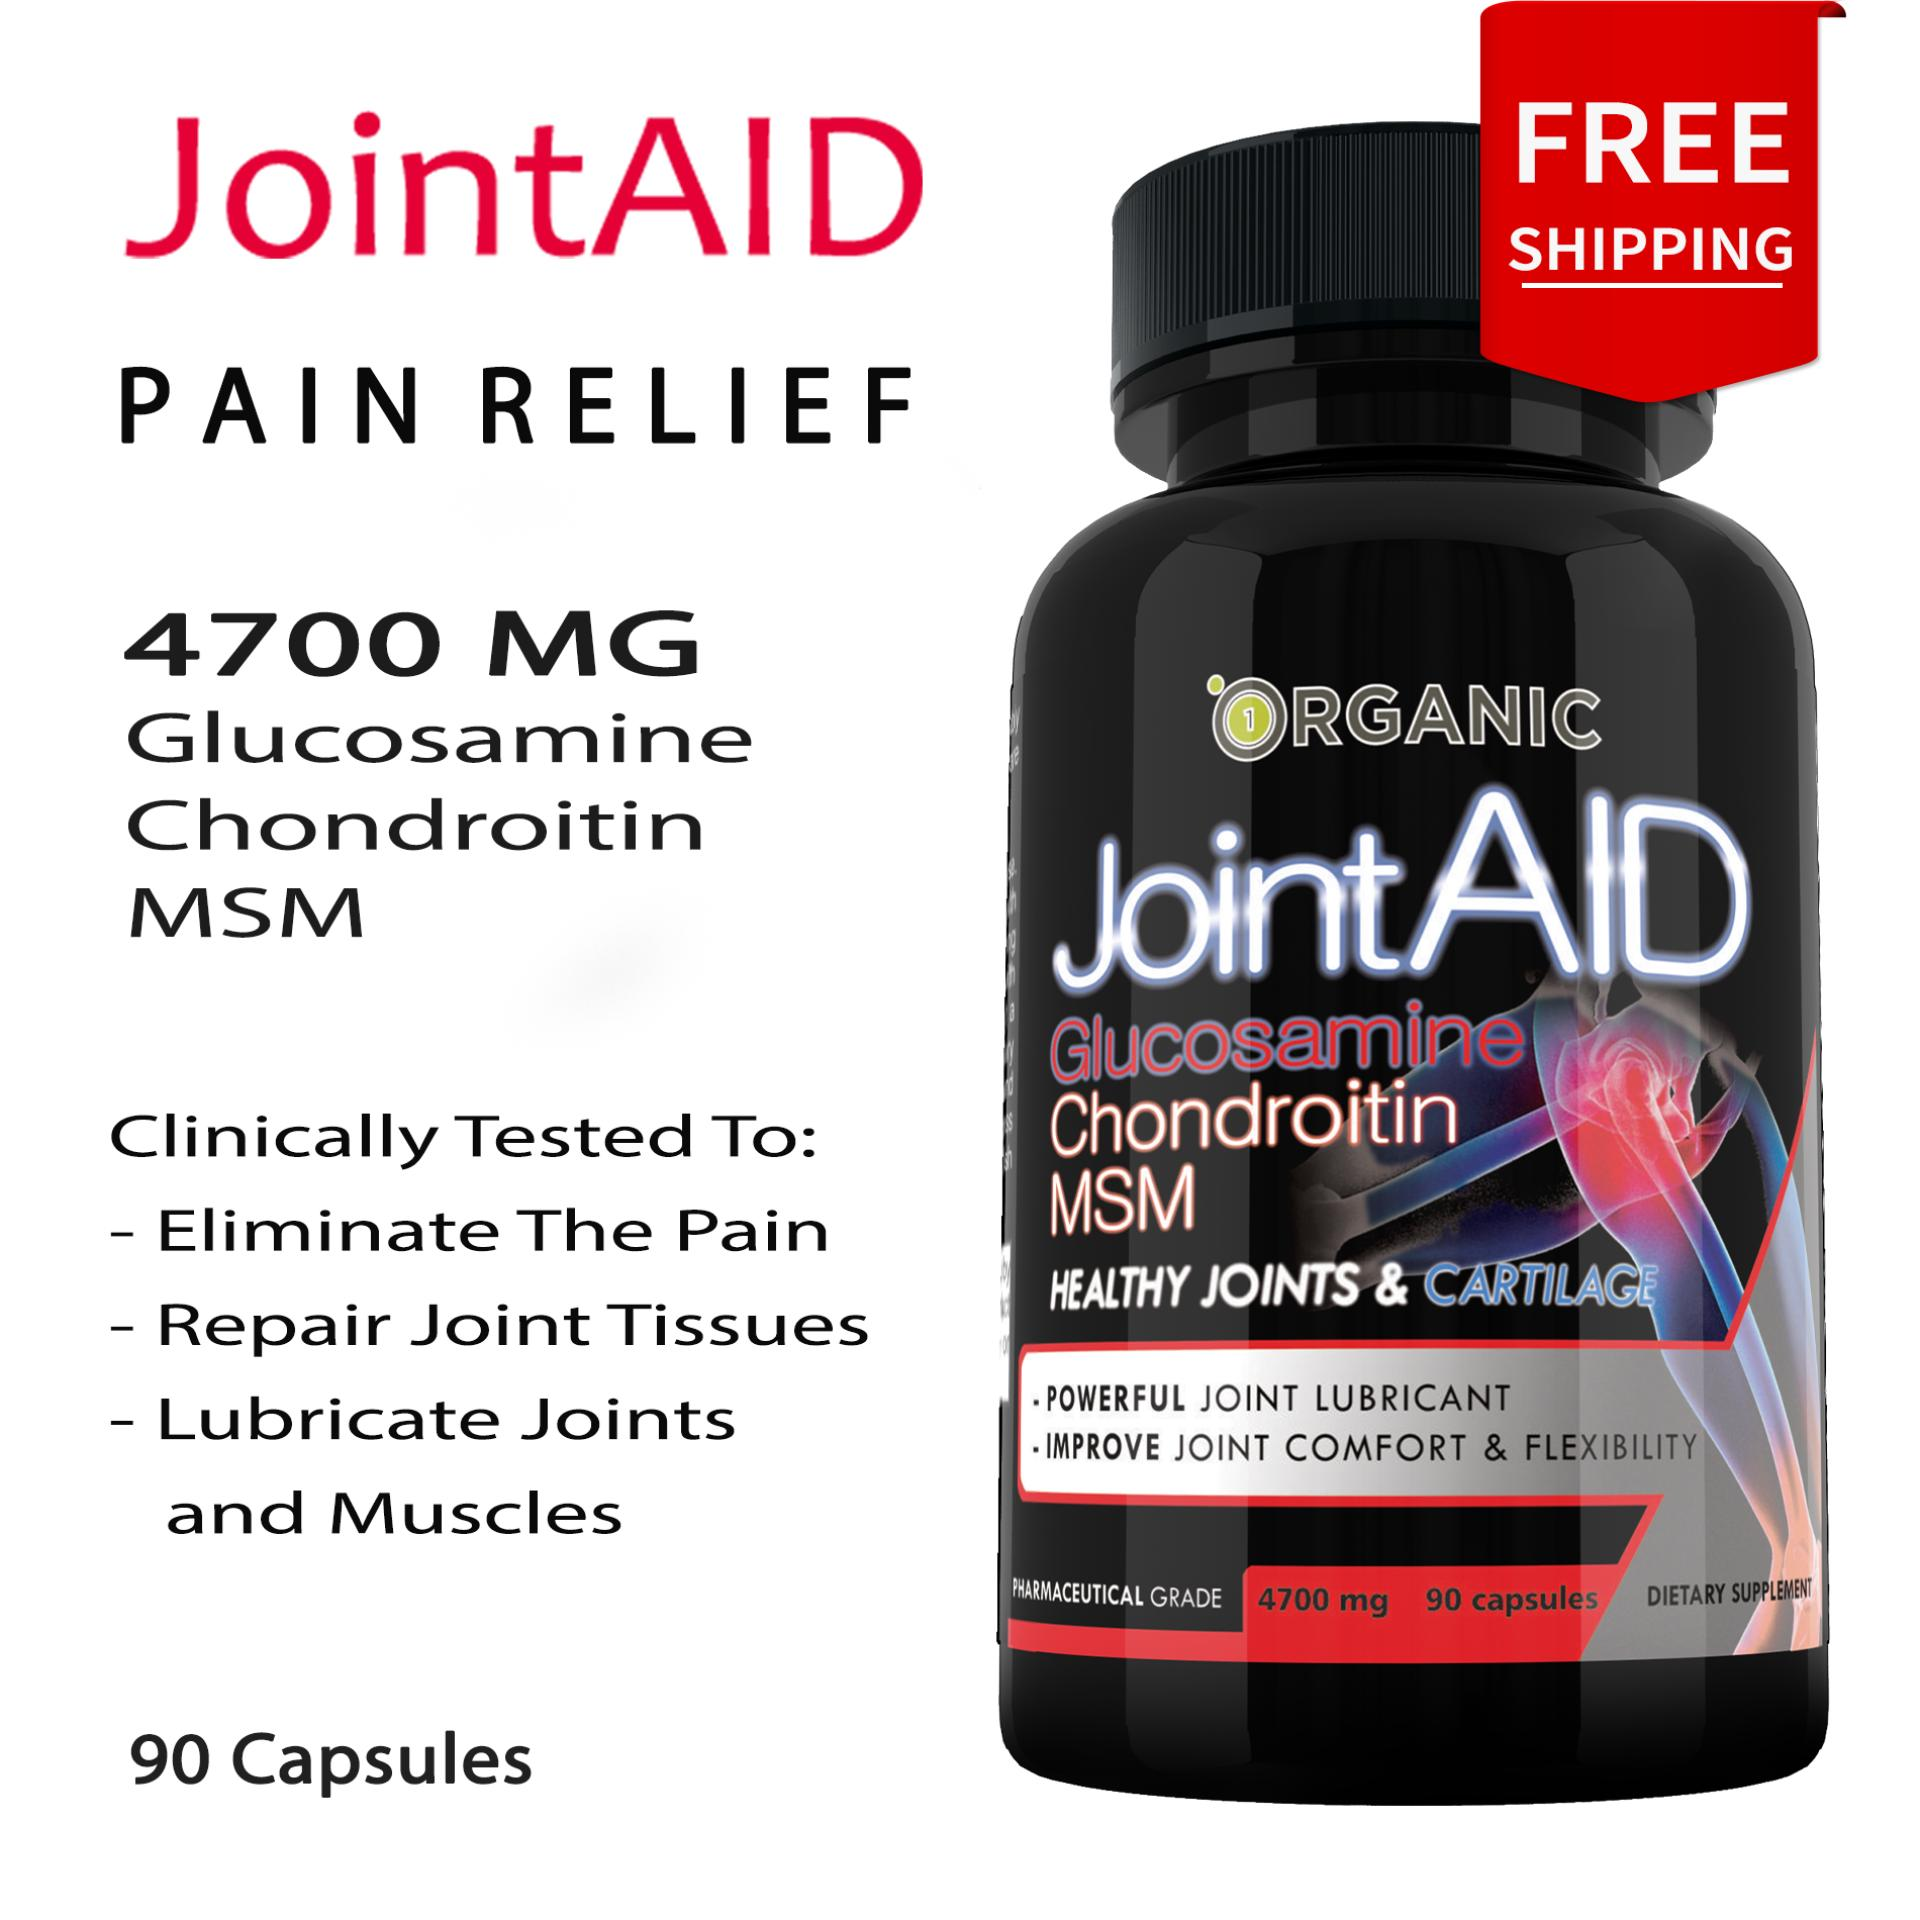 JointAid Pain Relief Supplement, Joint Repair, Glucosamine Chondroitin MSM  Collagen, 90 caps, 4700MG, Post Workout Recovery, Muscle REPAIR and